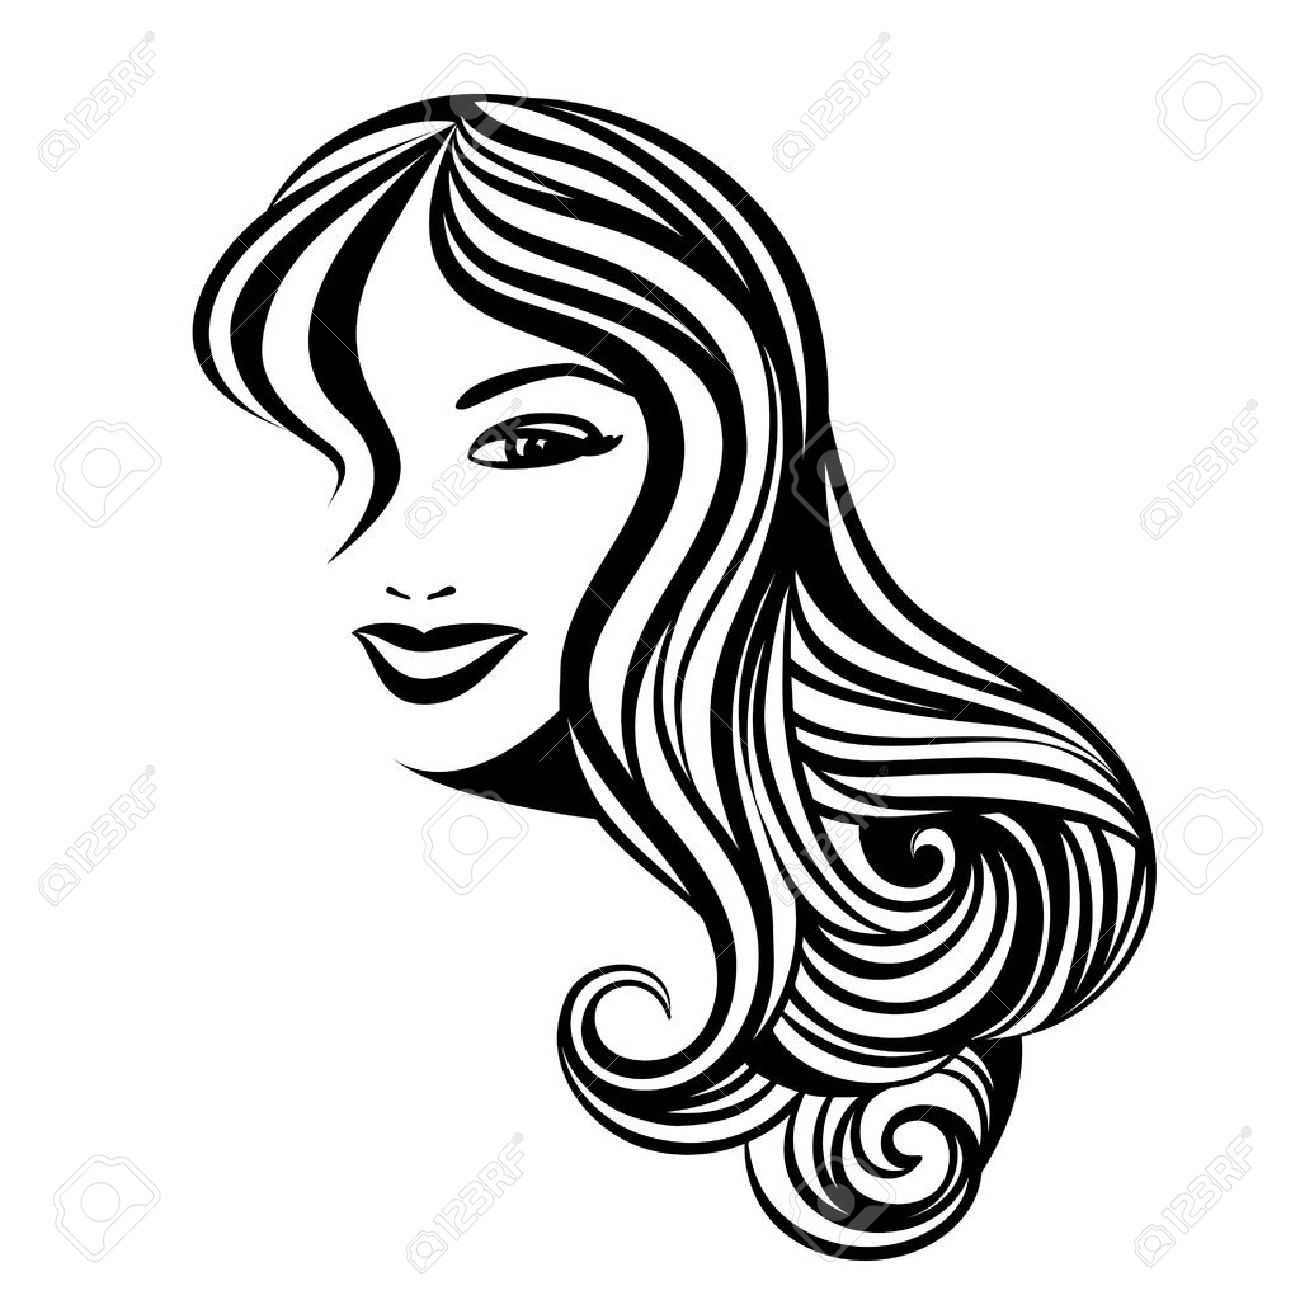 1300x1300 Drawing Of Female Hairstyles In A Variety Of Styles Stock Vector